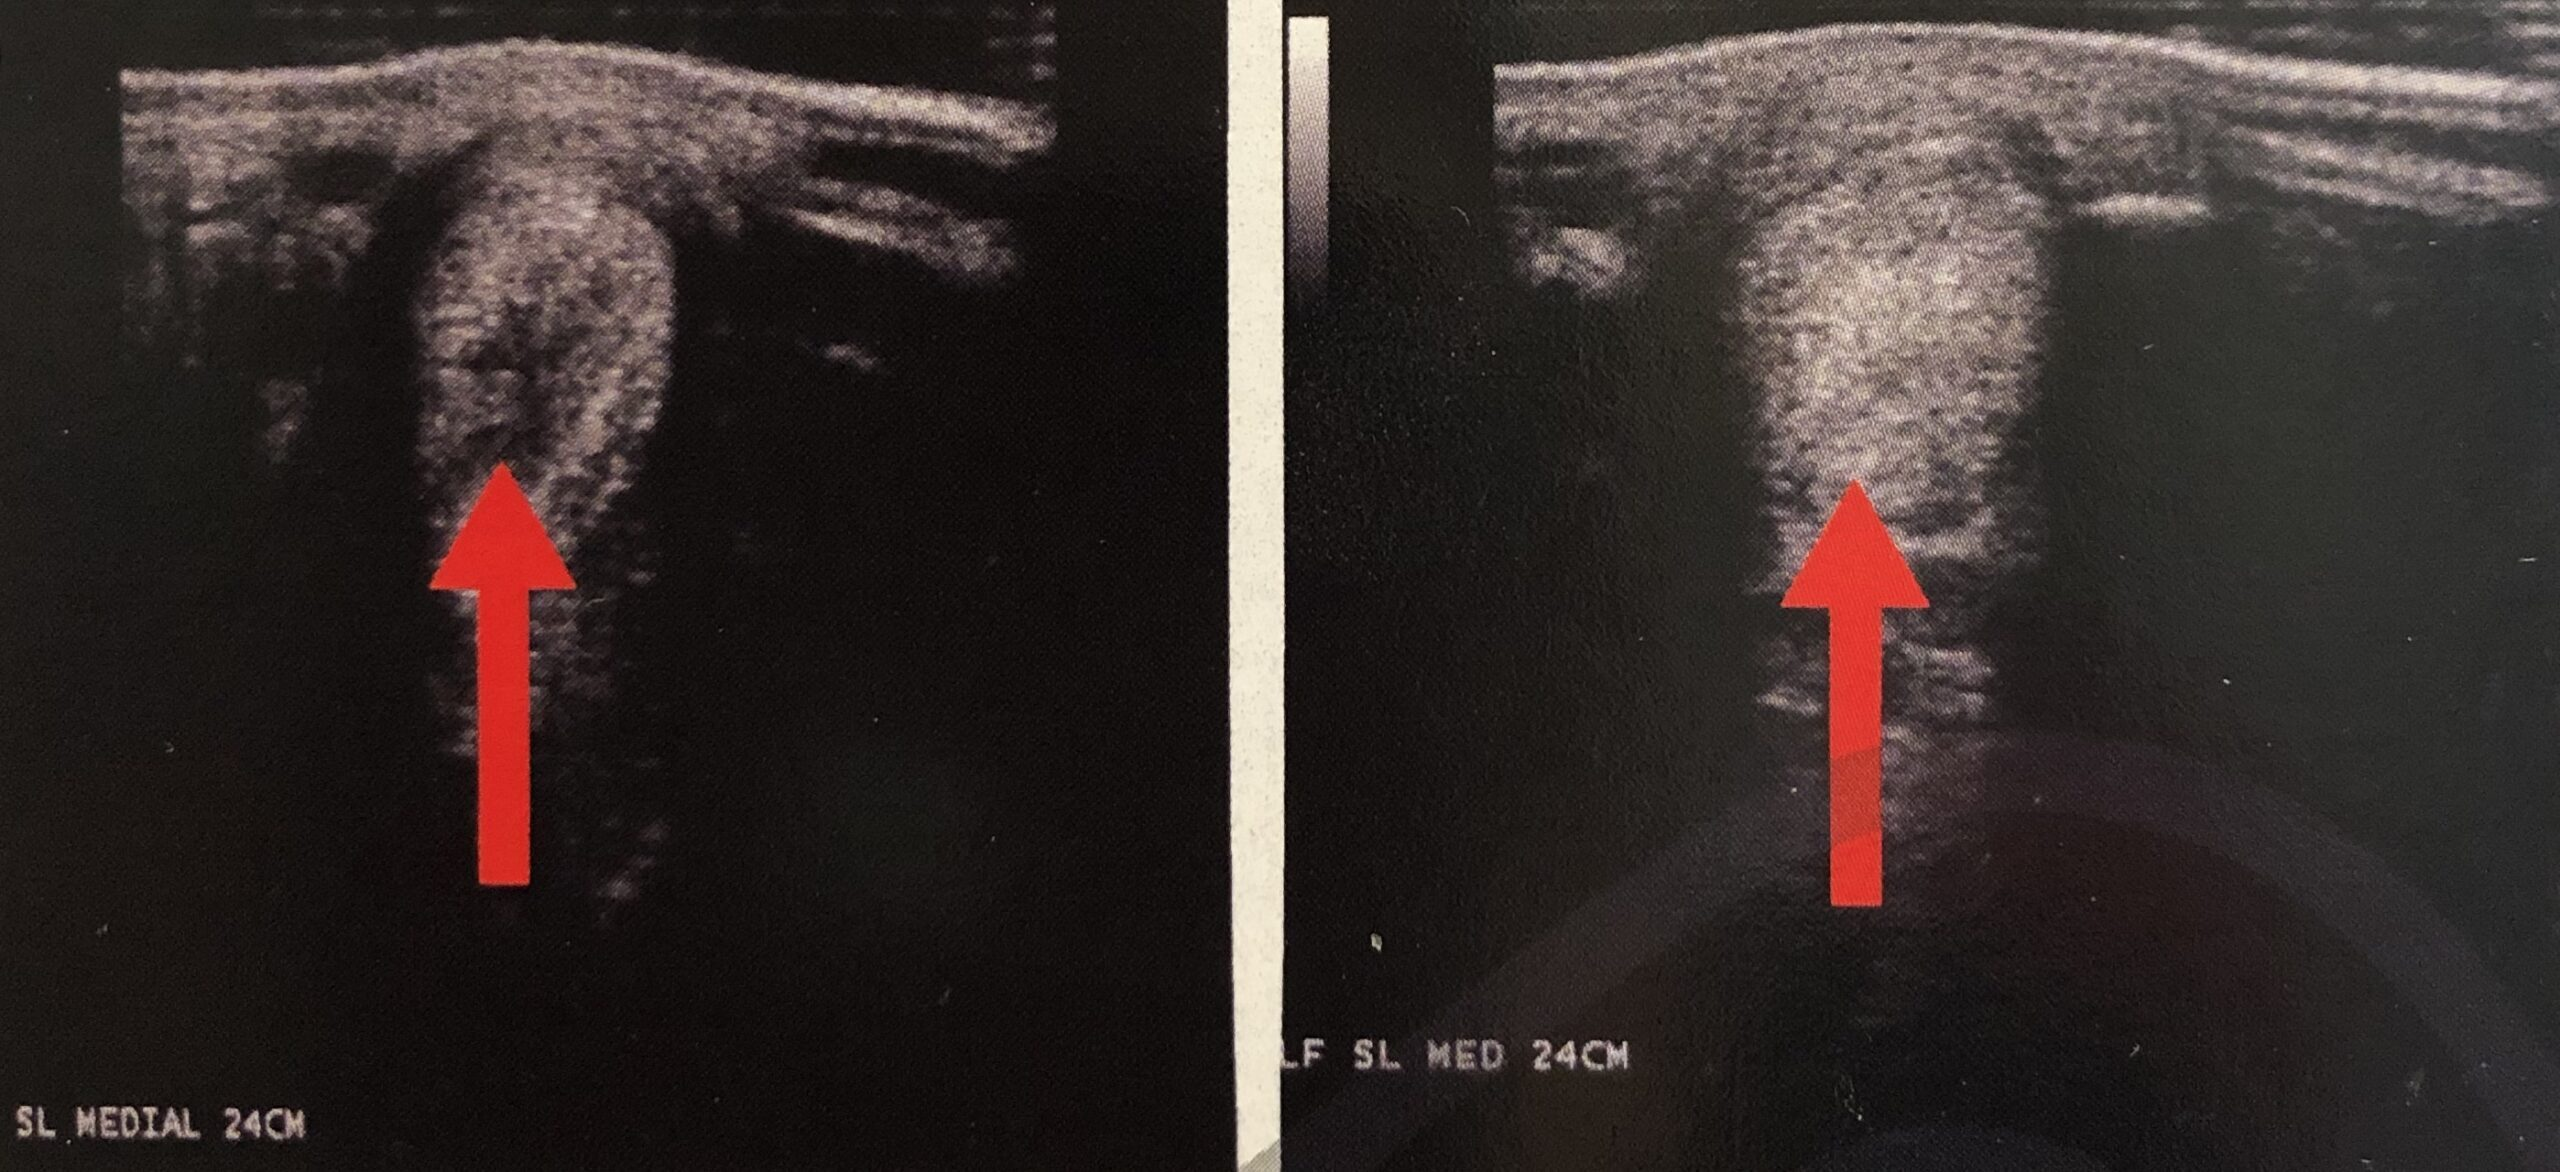 Left front suspensory ligament medial branch core lesion before and after regenerative laser therapy. Photo courtesy of SOUND.